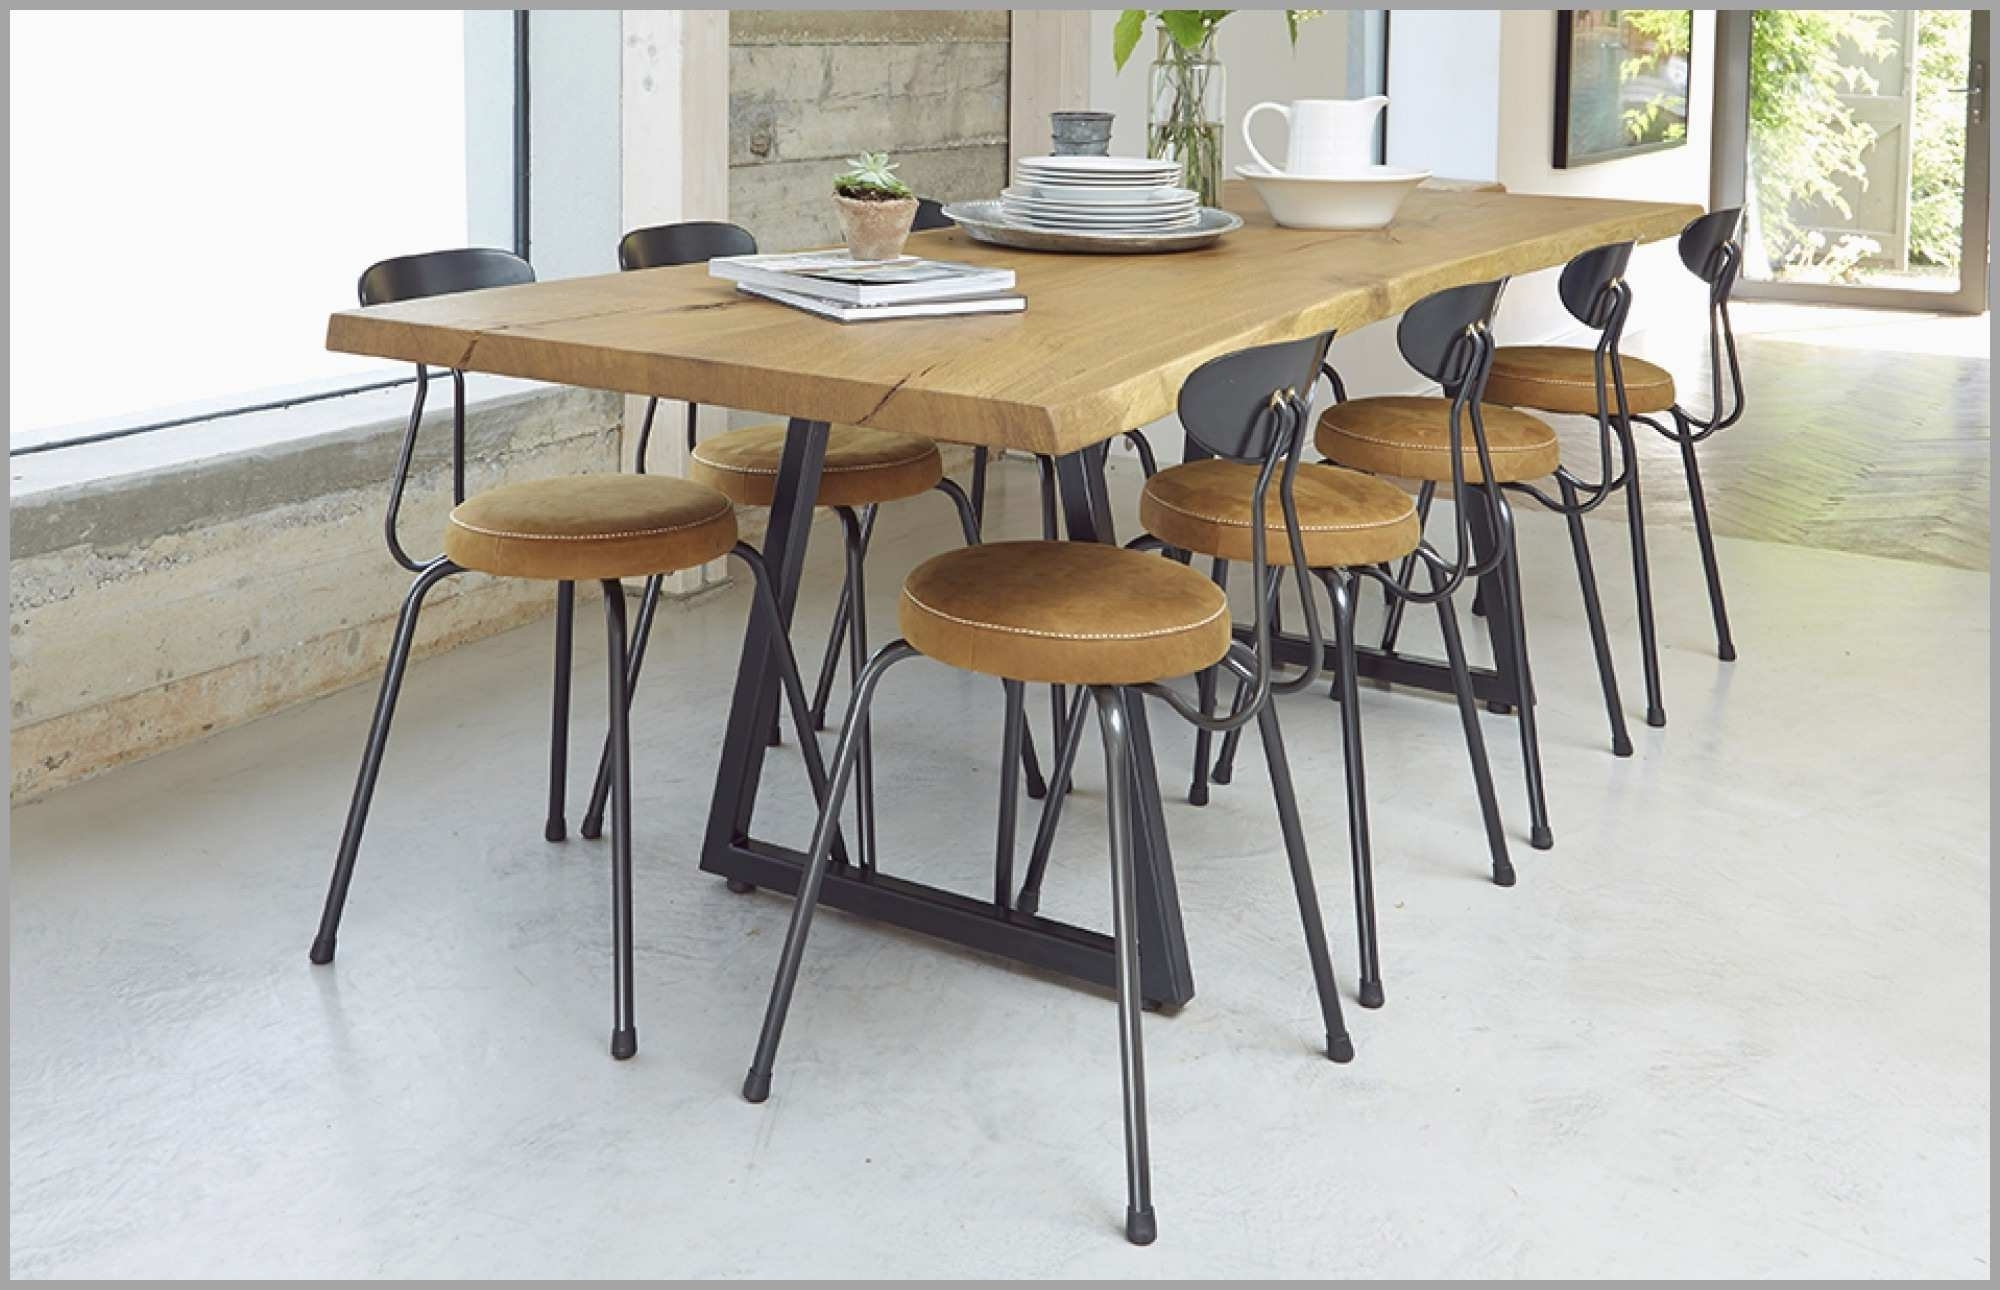 8 Seater Dining Table Sets inside Famous 8 Seater Dining Table Set Inspirational Brown 8 Seater Dining Table